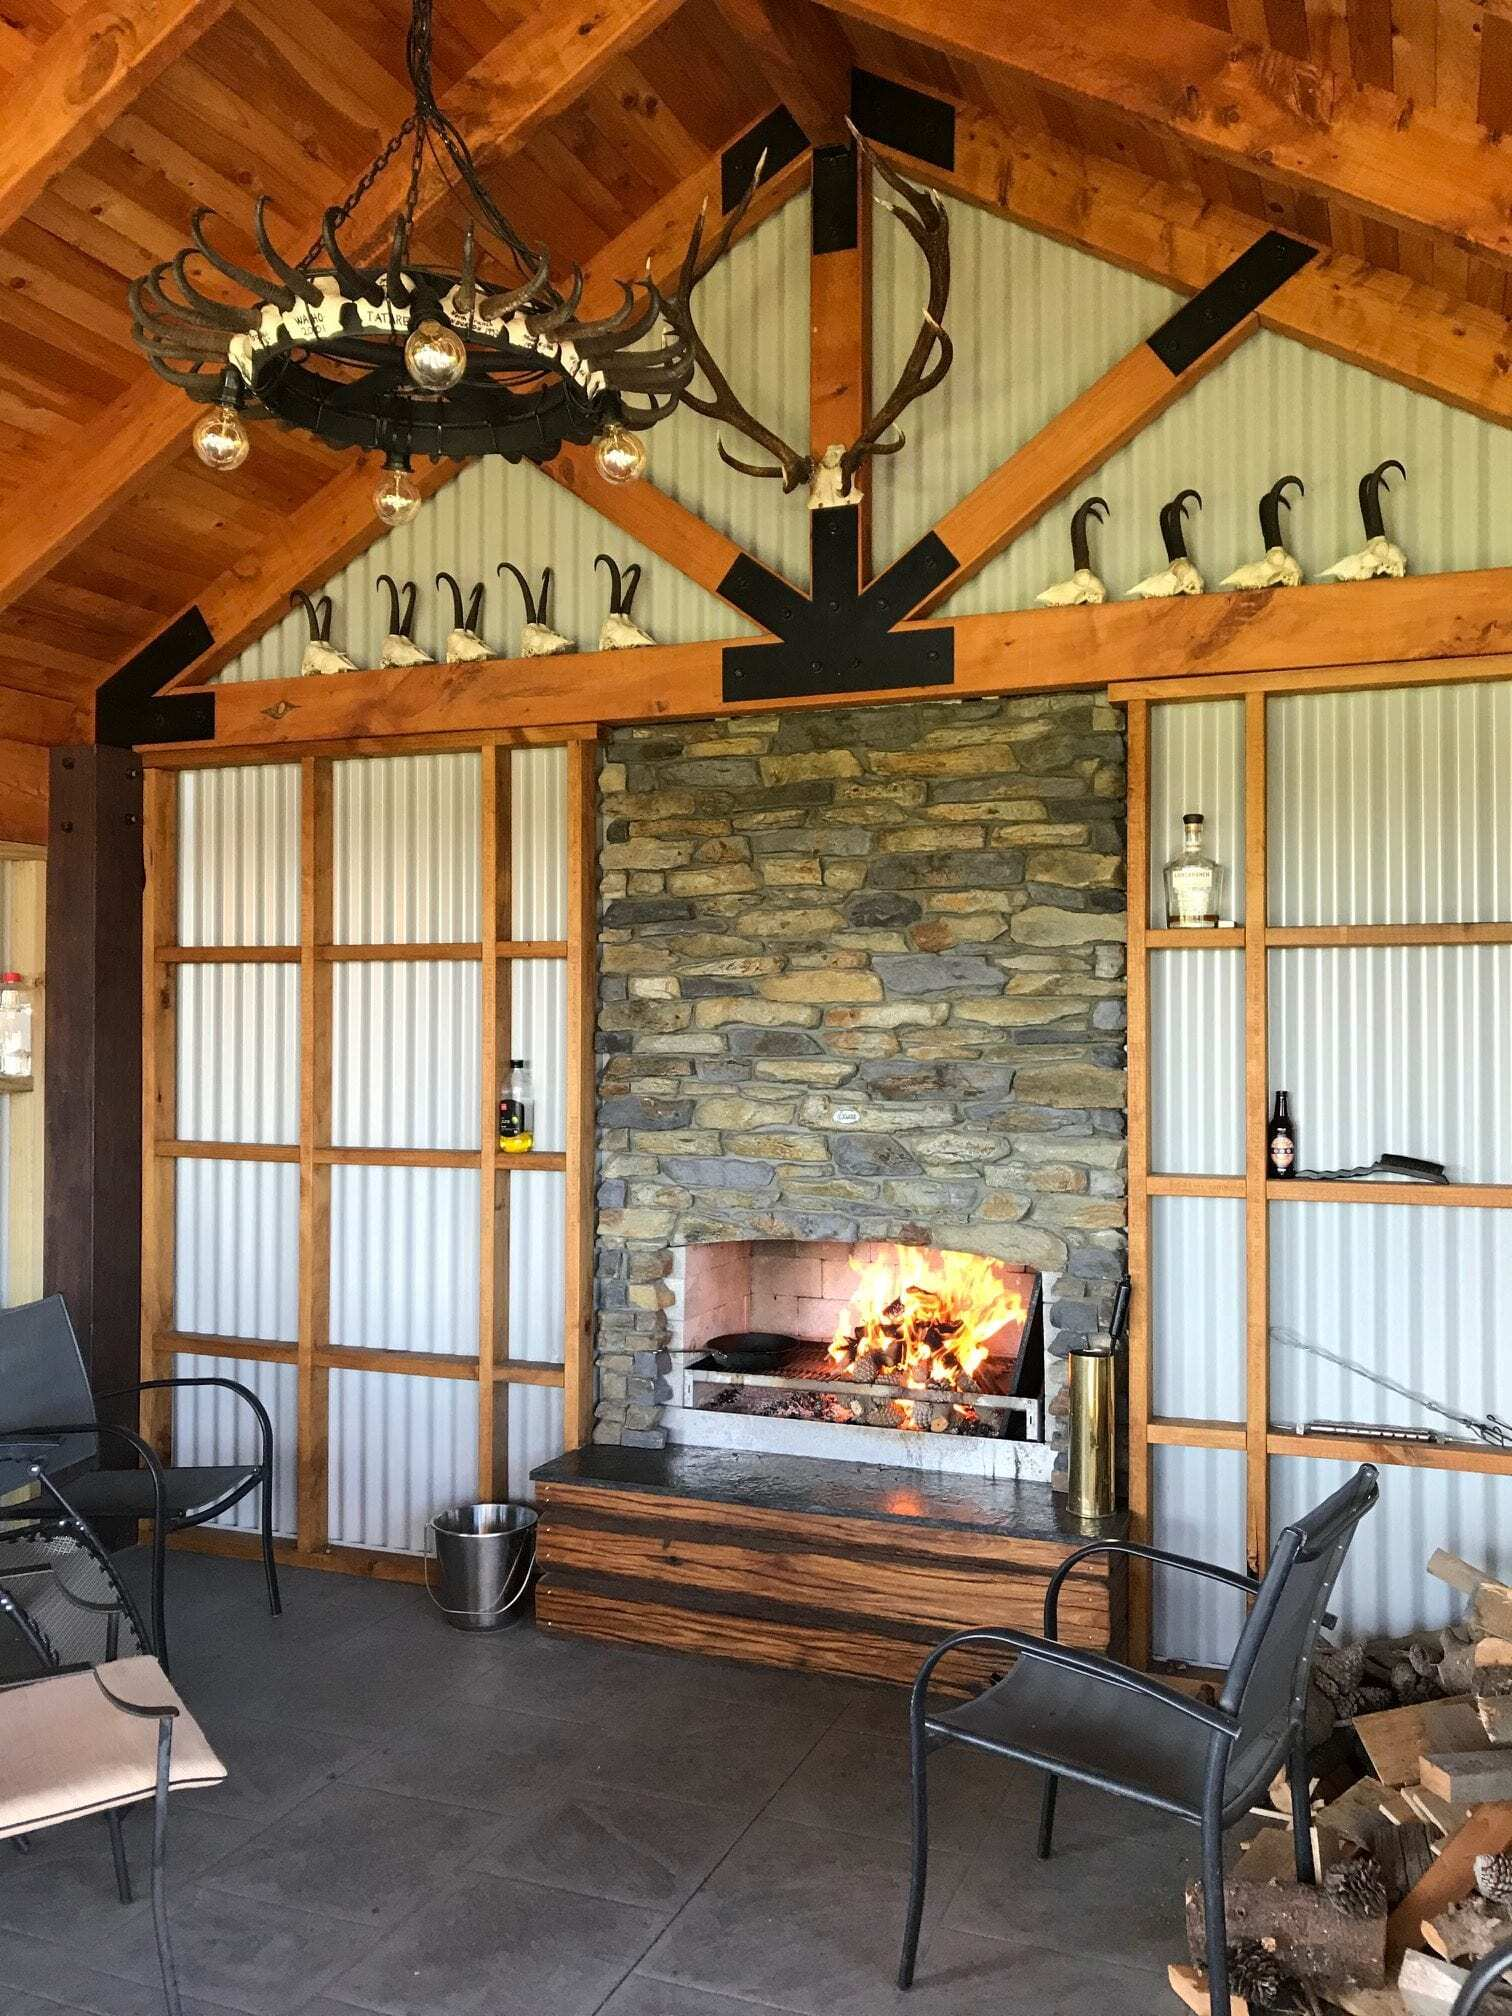 House looks better with a Flare Outdoor fire.